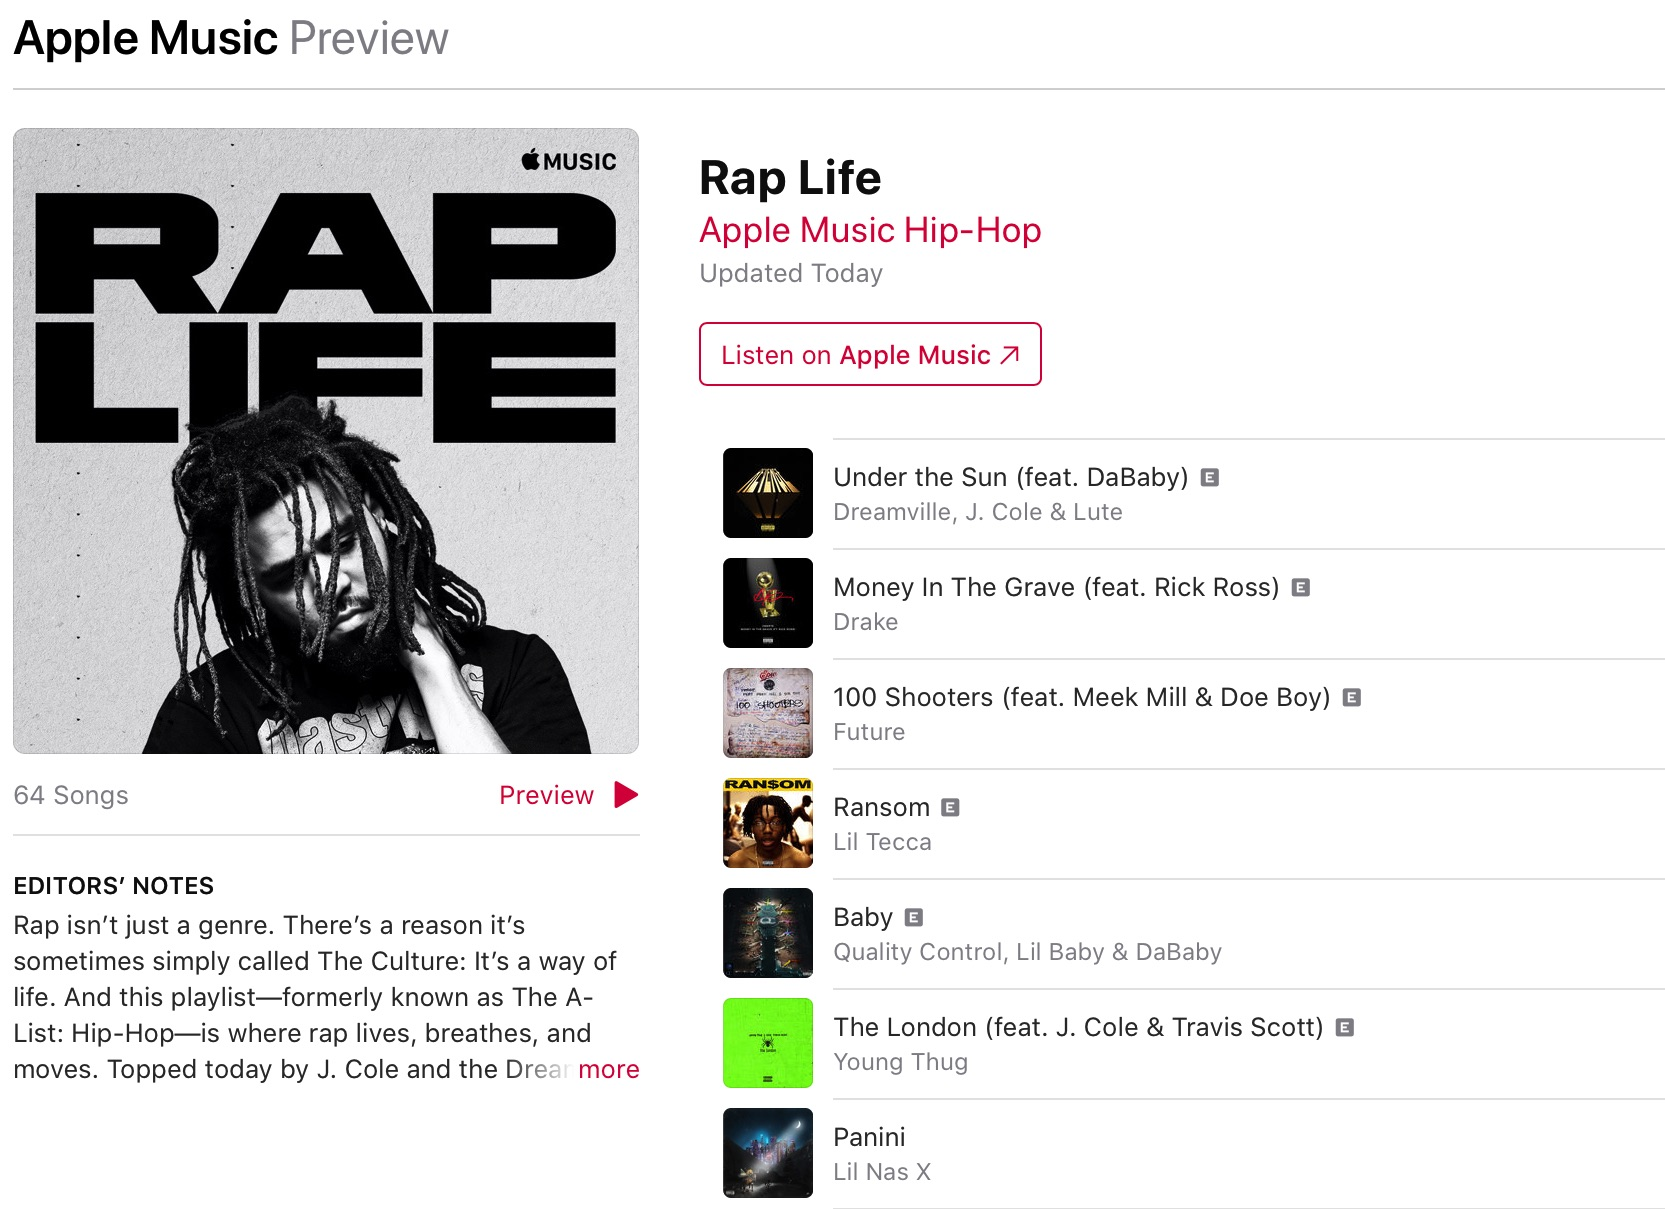 Apple Music's focus on hip-hop continues.